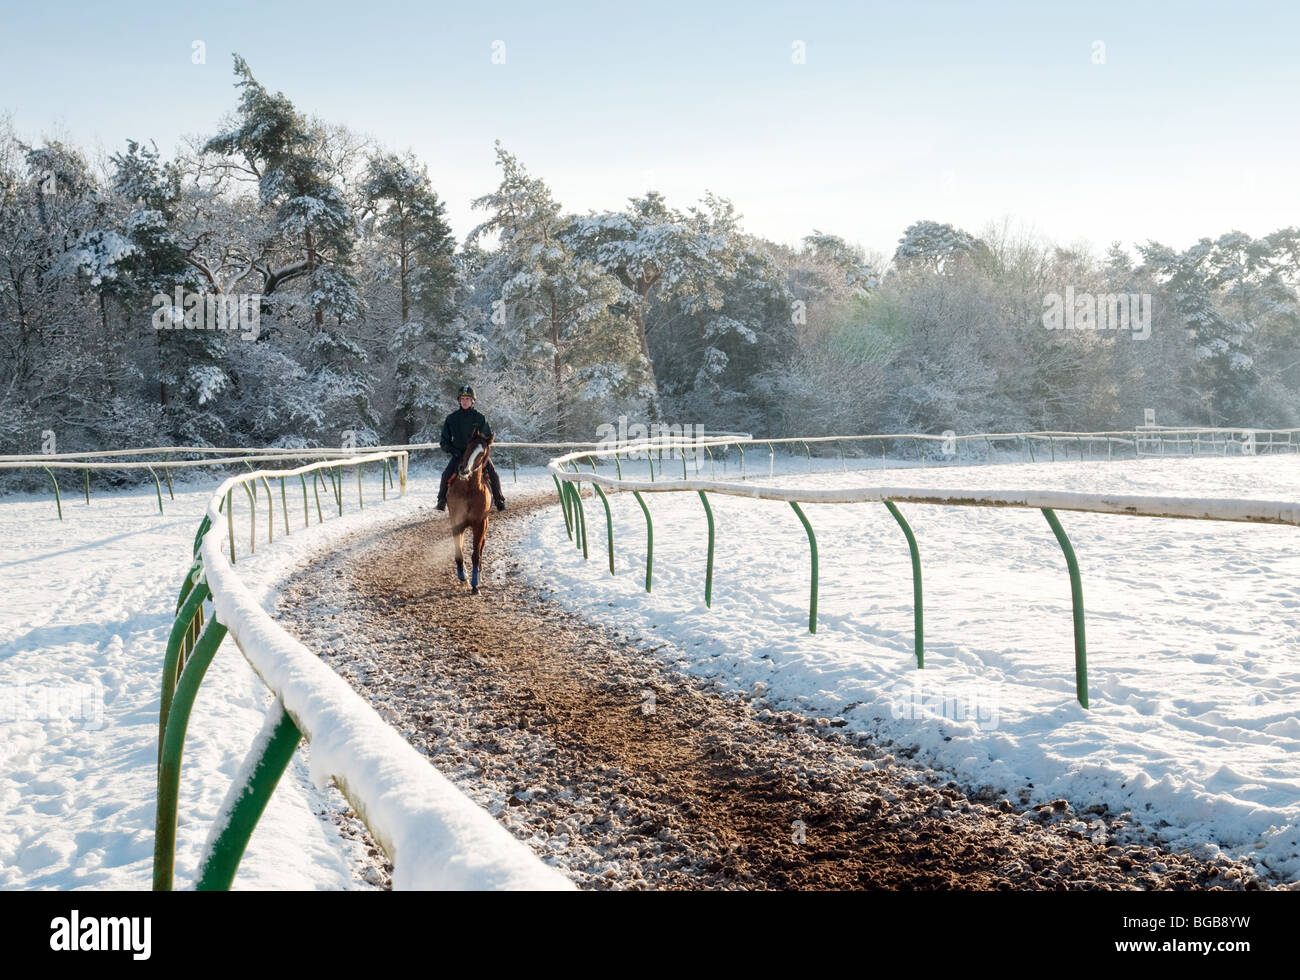 A Racehorse and rider in winter snow, Newmarket, Suffolk, UK - Stock Image